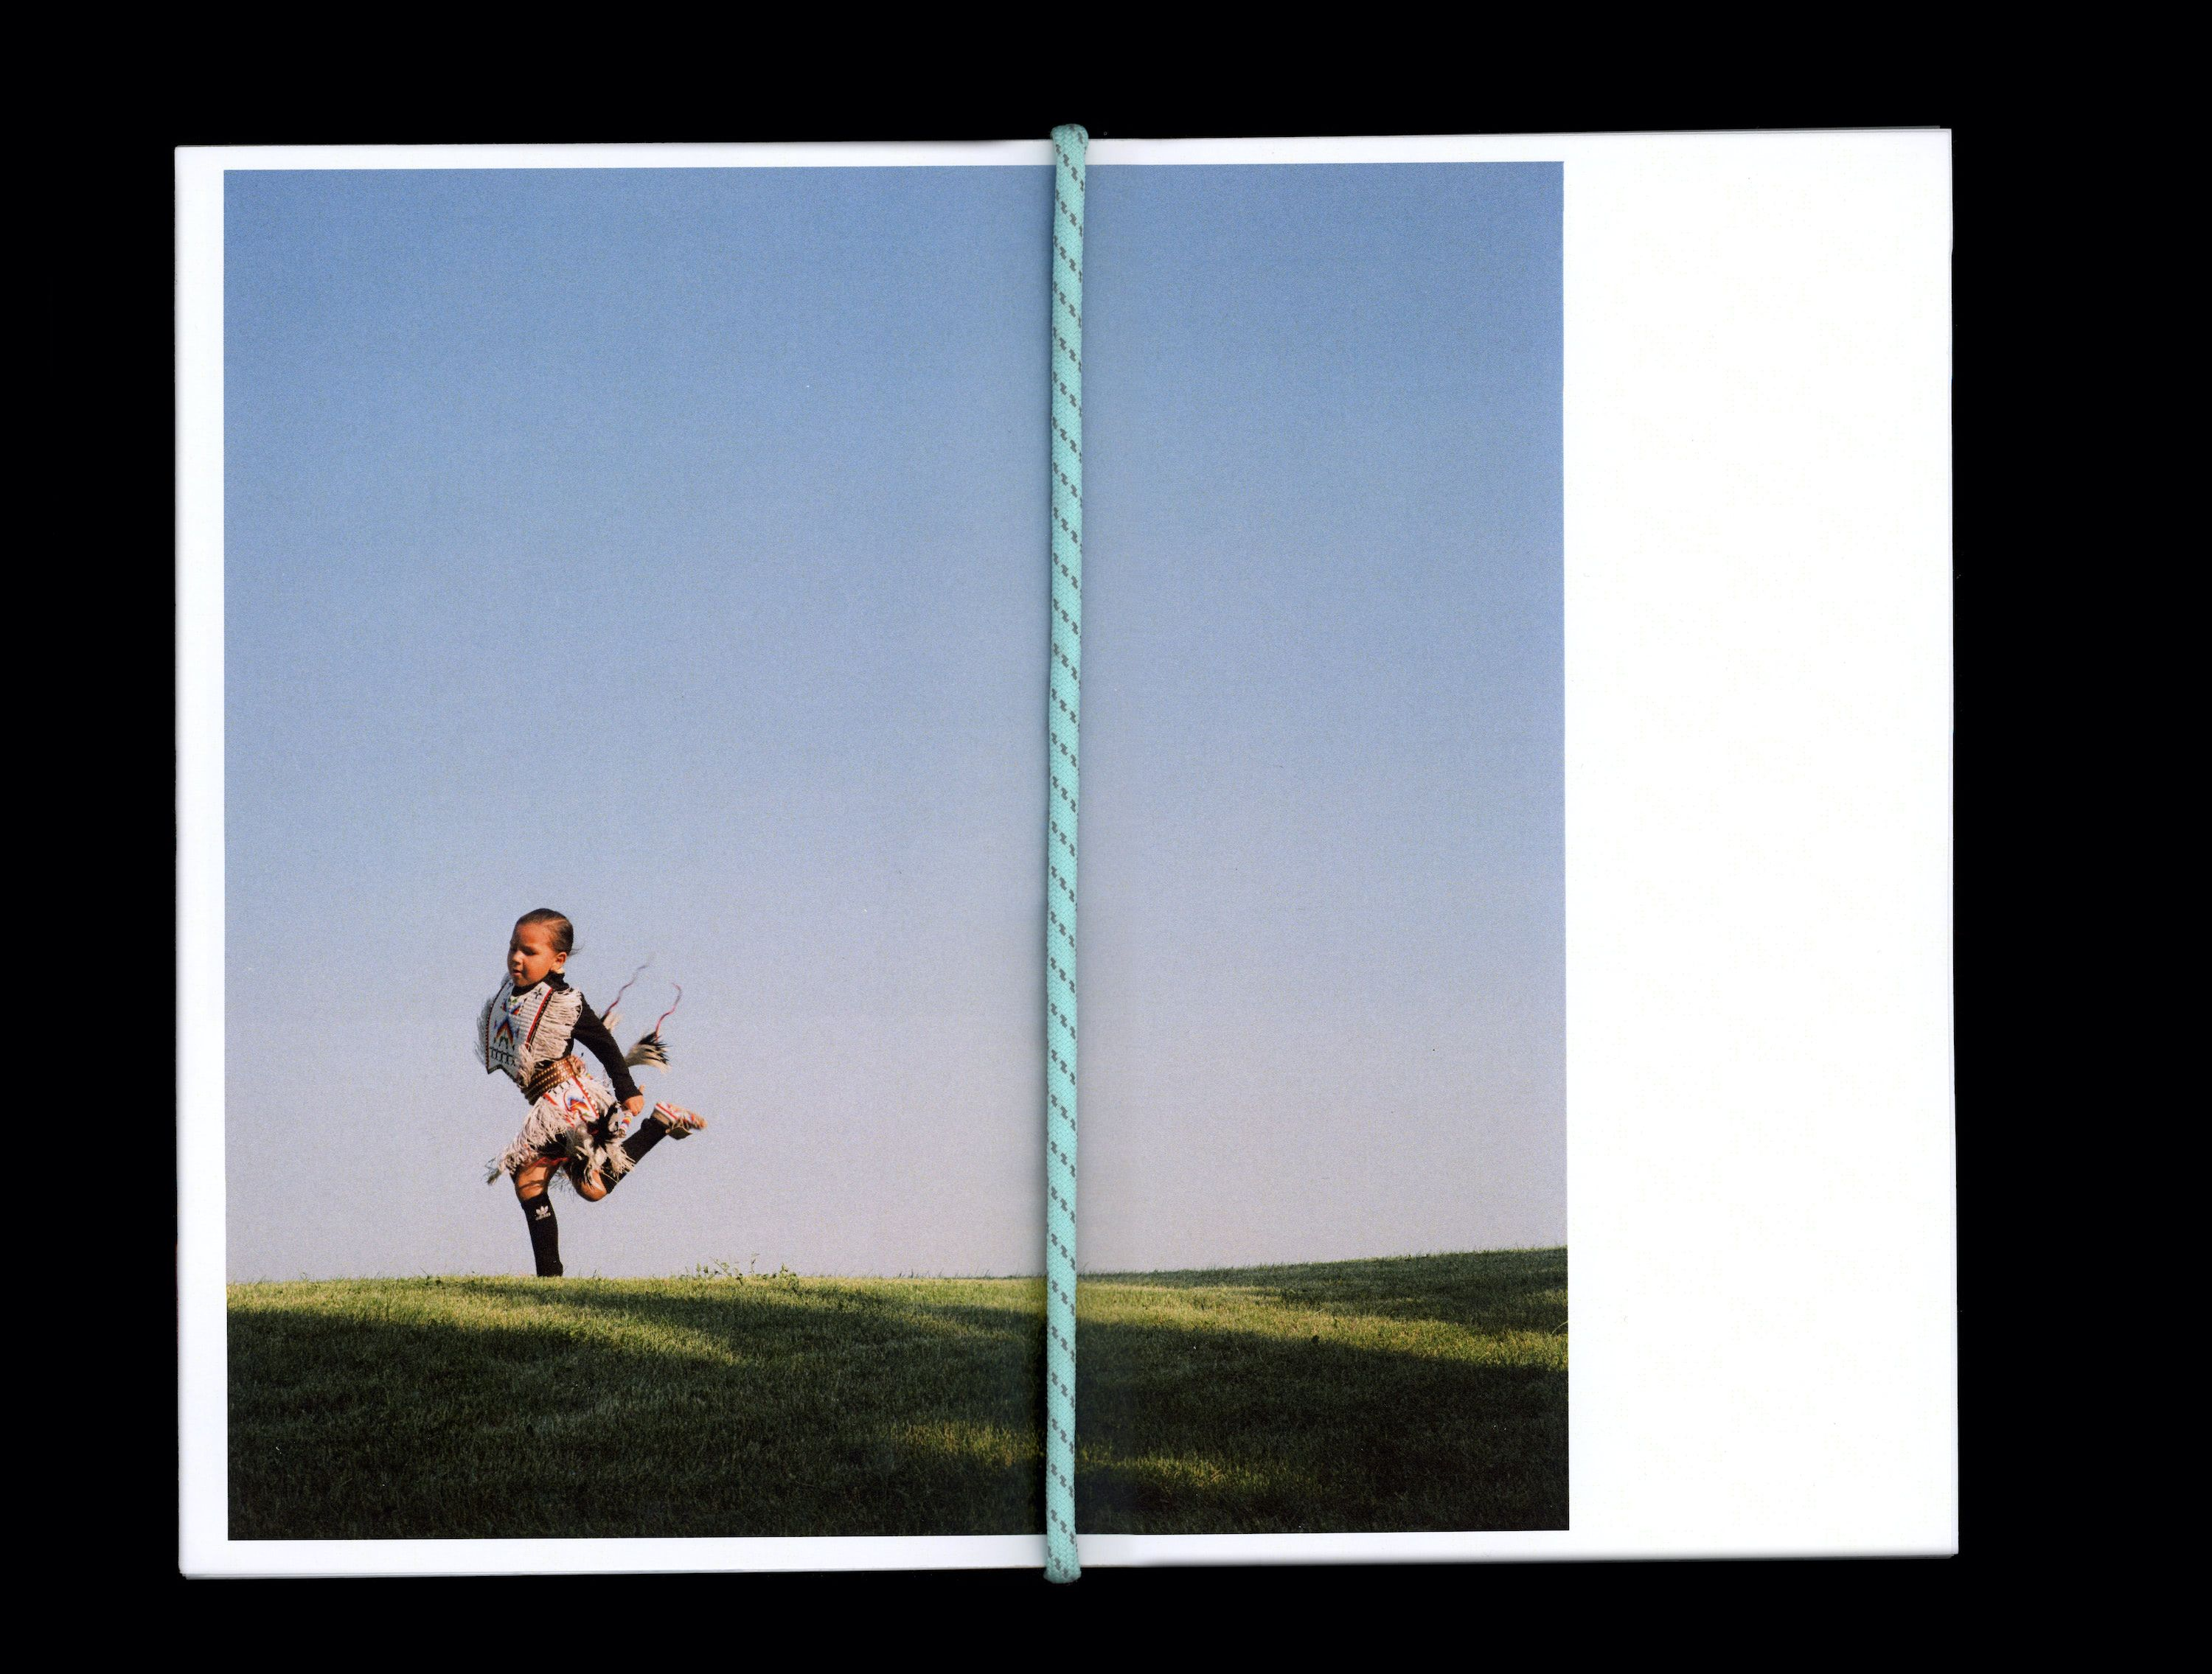 Photograph in book of Tokala Little Sky dancing on grass field with blue sky in the background